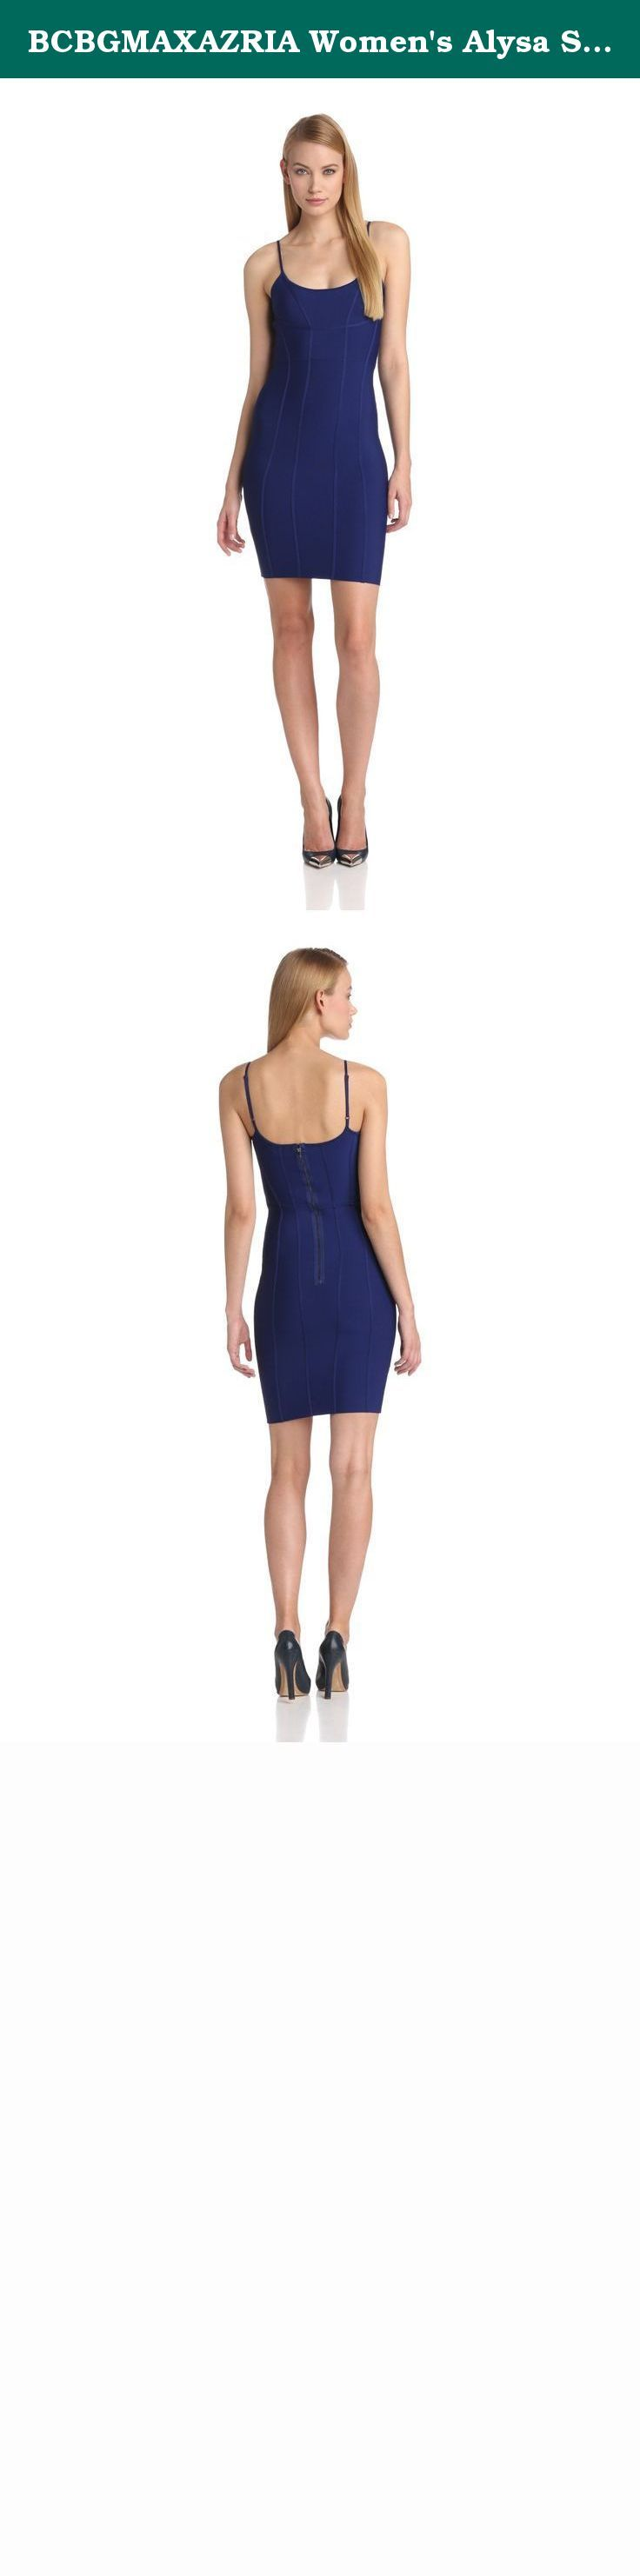 BCBGMAXAZRIA Women's Alysa Spagetti Strap Dress, Orient Blue, Large. A sensation in any season- this knit dress is a must-have for figure-flattering style.